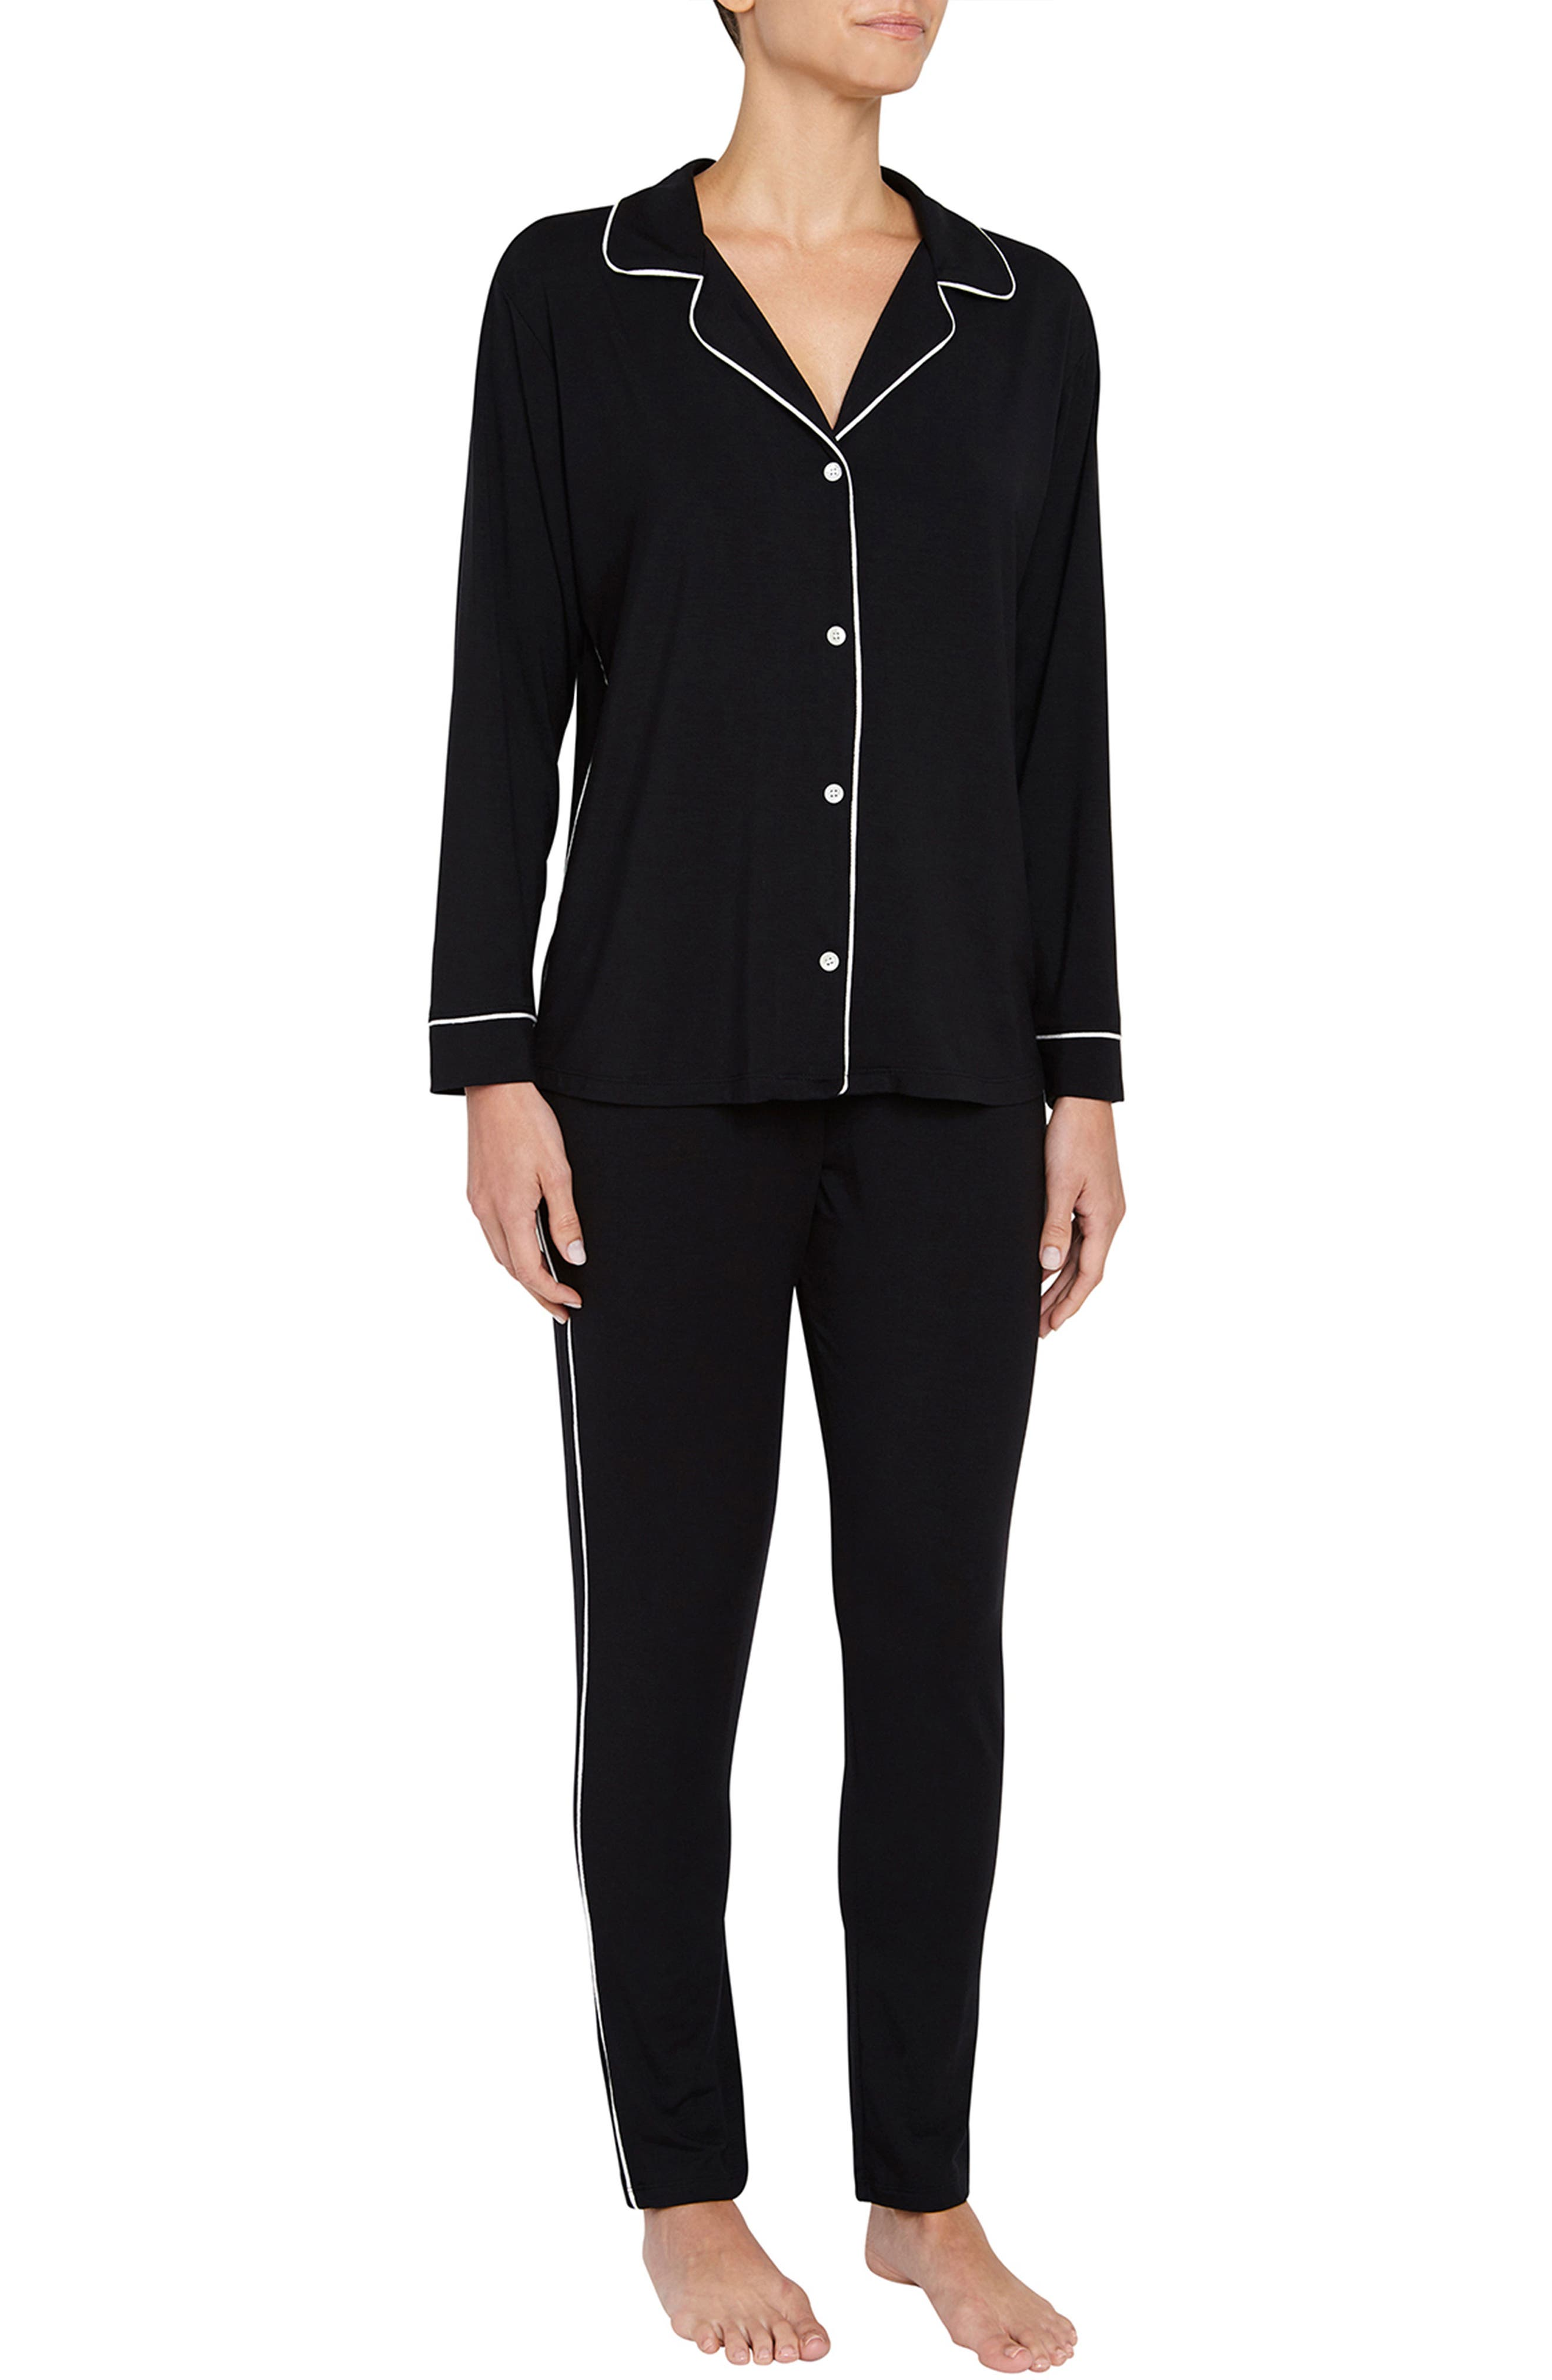 Gisele Slim Pajamas,                         Main,                         color, Black/ Ivory